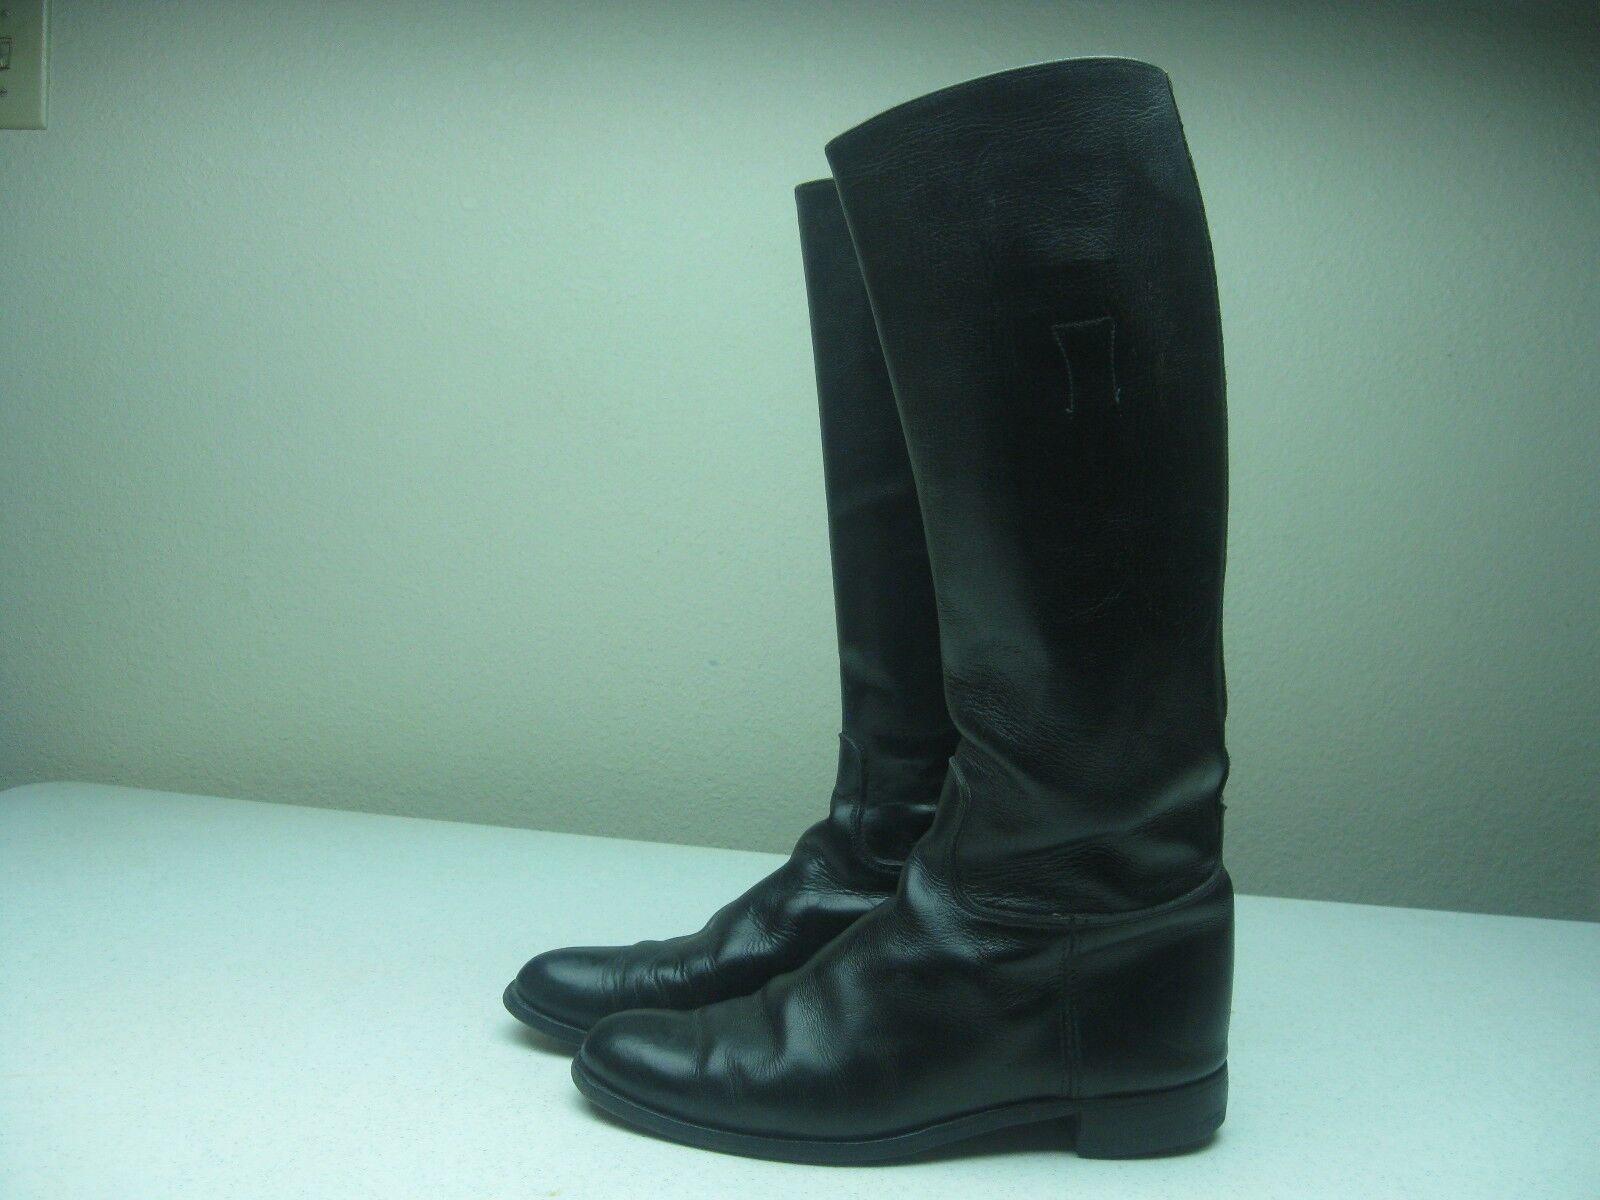 Vintage DISTRESSED BLACK LEATHER EQUESTRIAN RIDING BOOTS SIZE 10D MADE IN USA